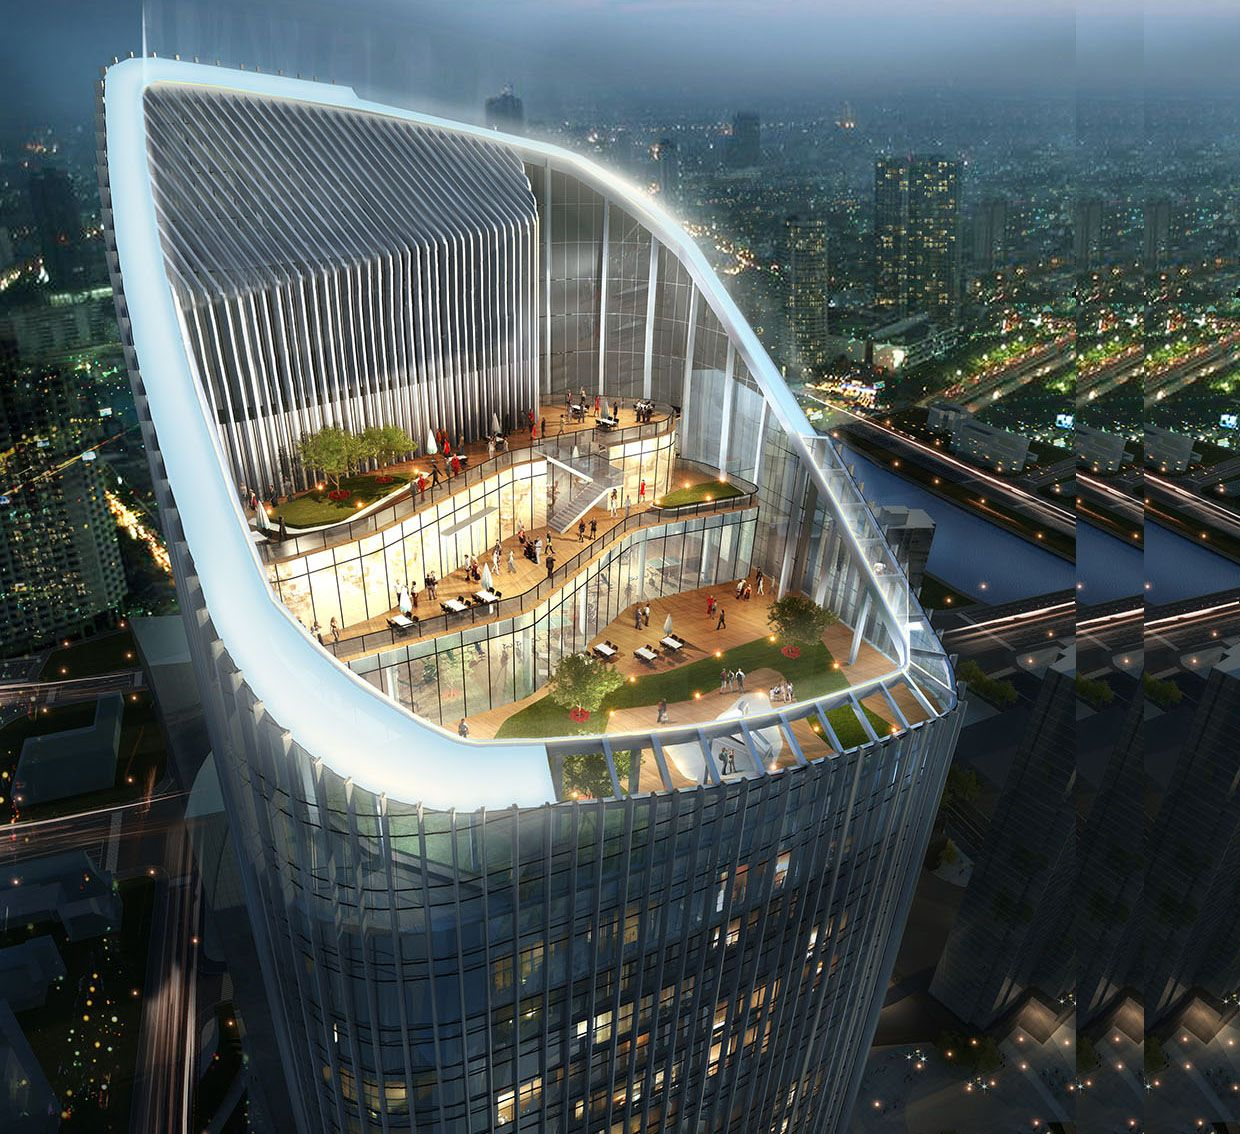 Architecture Design House: Benoy ☮k☮ #architecture. Interesting That In The Future We